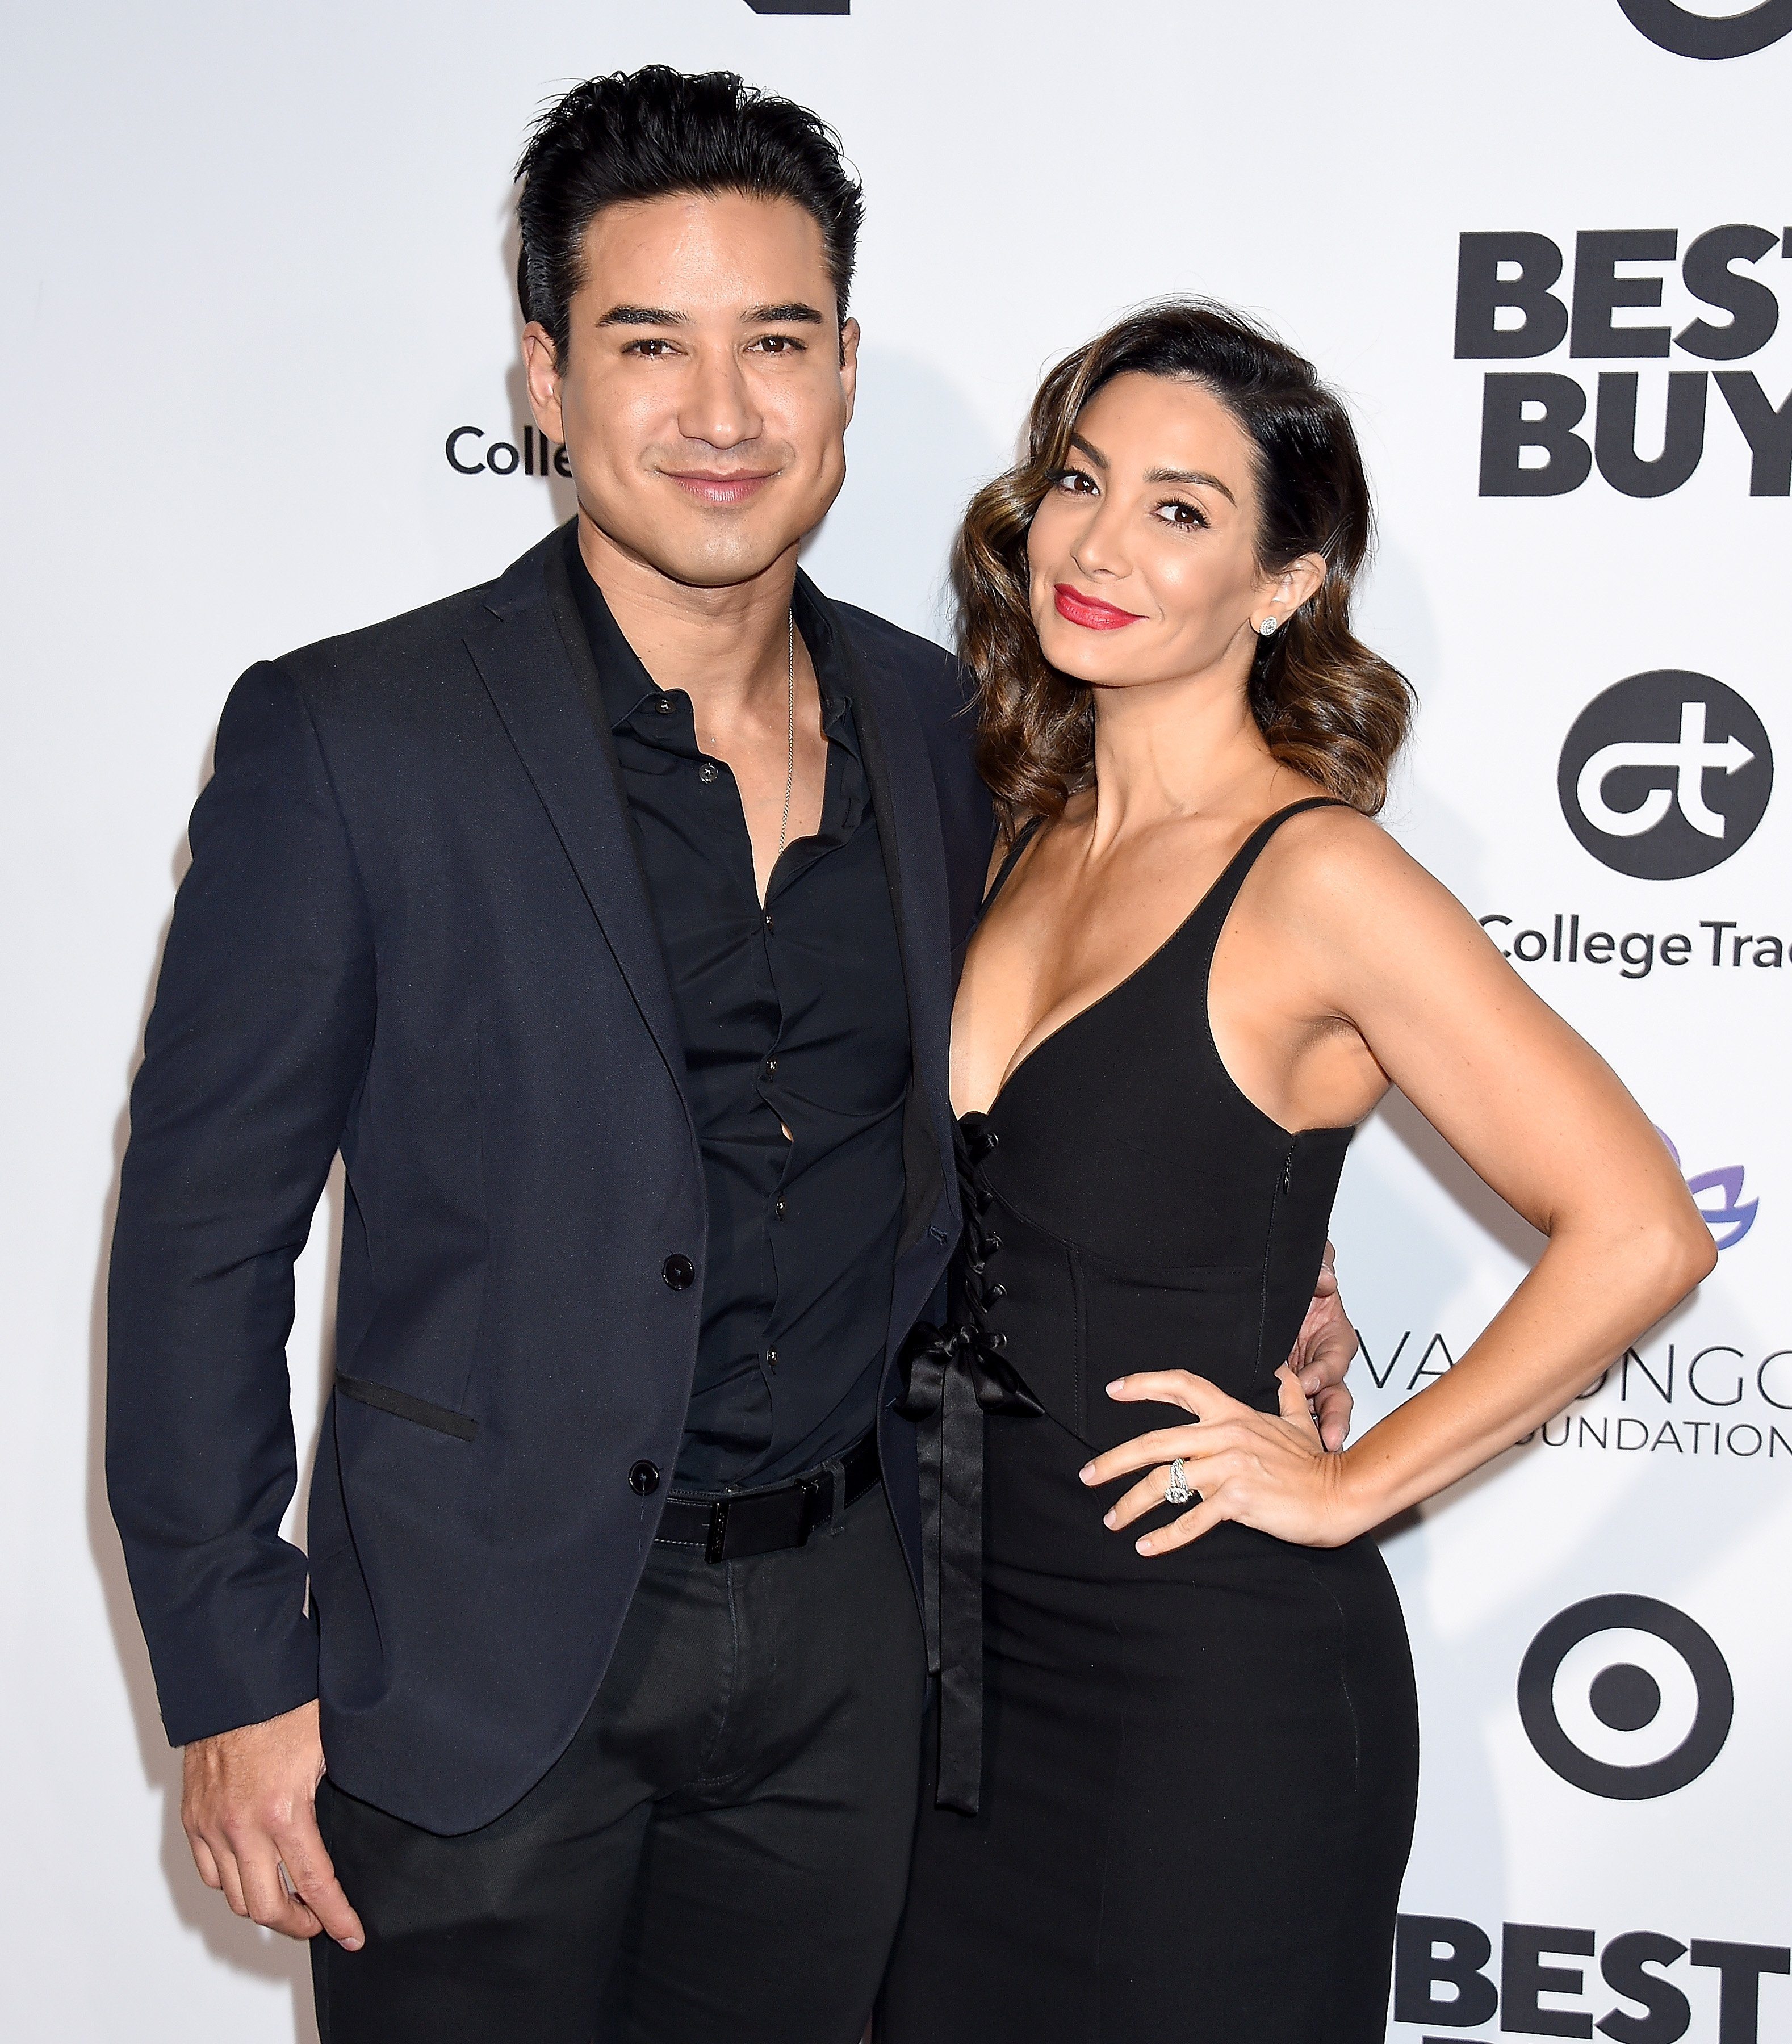 Mario Lopez and Courtney Laine Mazza attend the Eva Longoria Foundation Dinner Gala in Los Angeles, California on November 8, 2018 | Photo: Getty Images